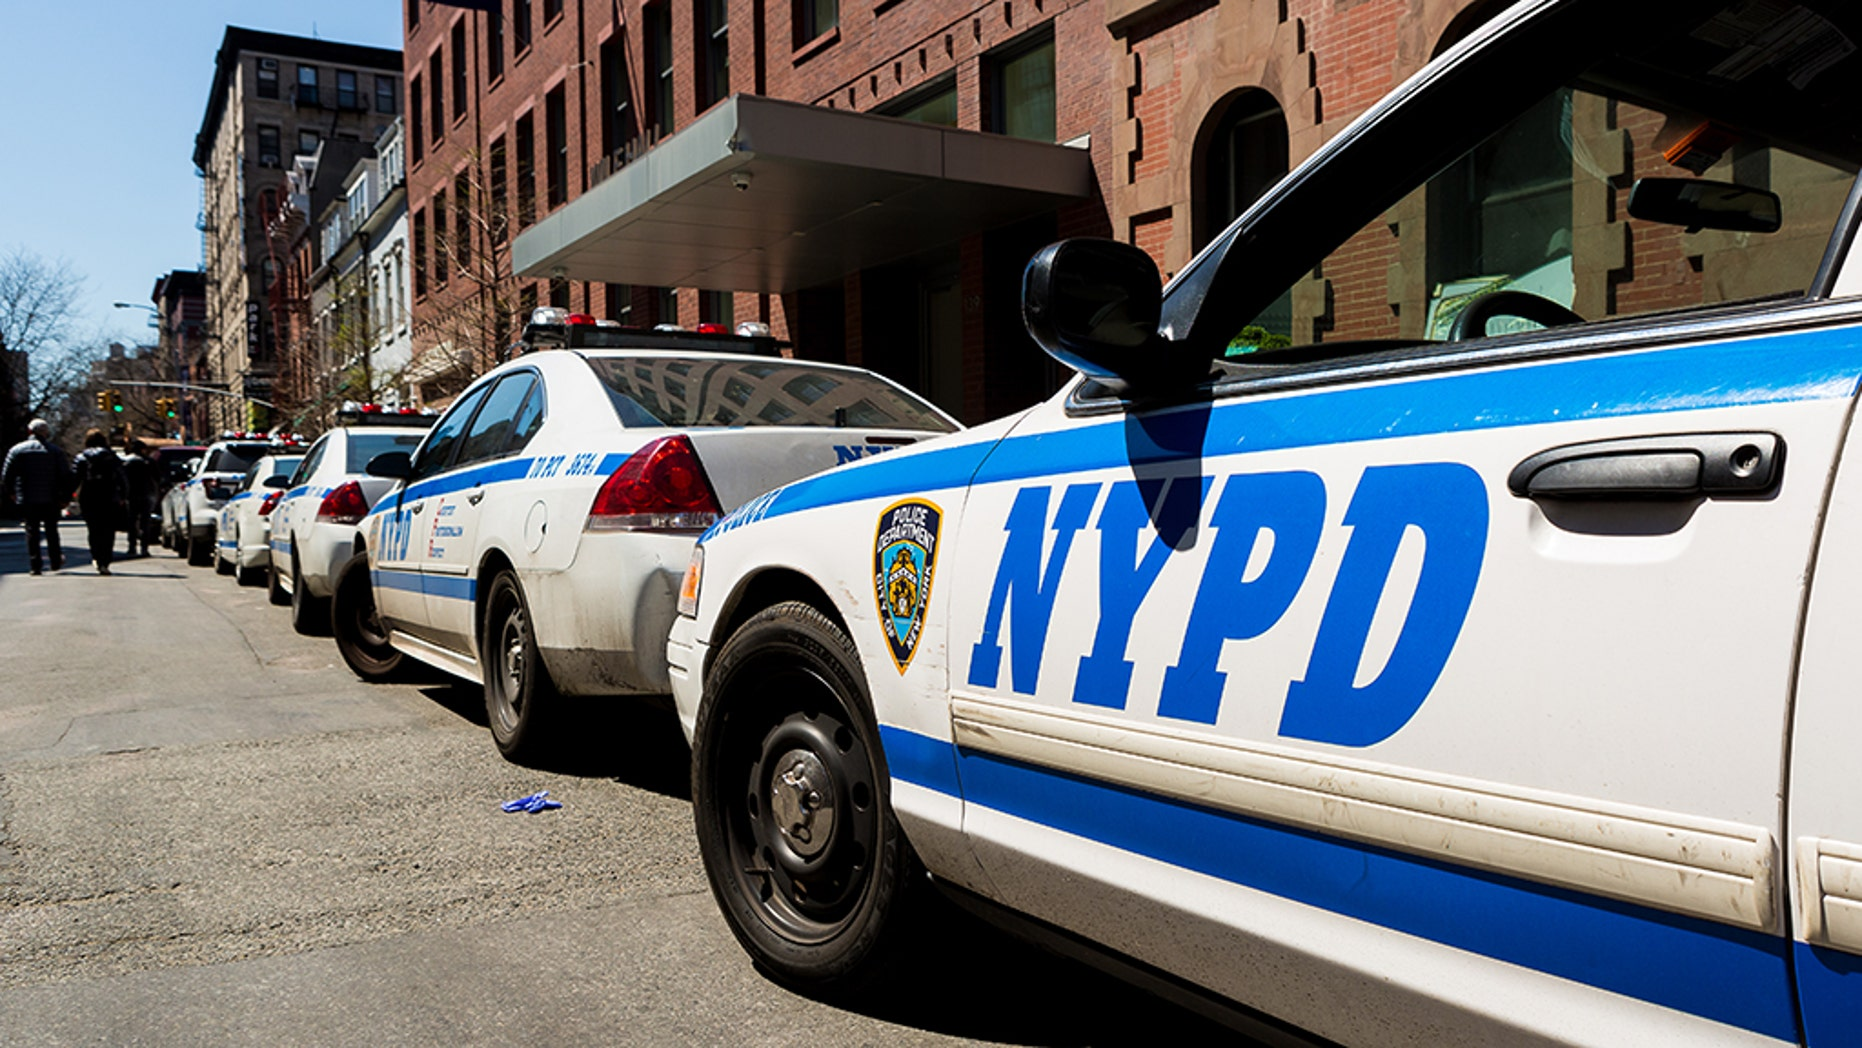 New York City hails weekend without any murders